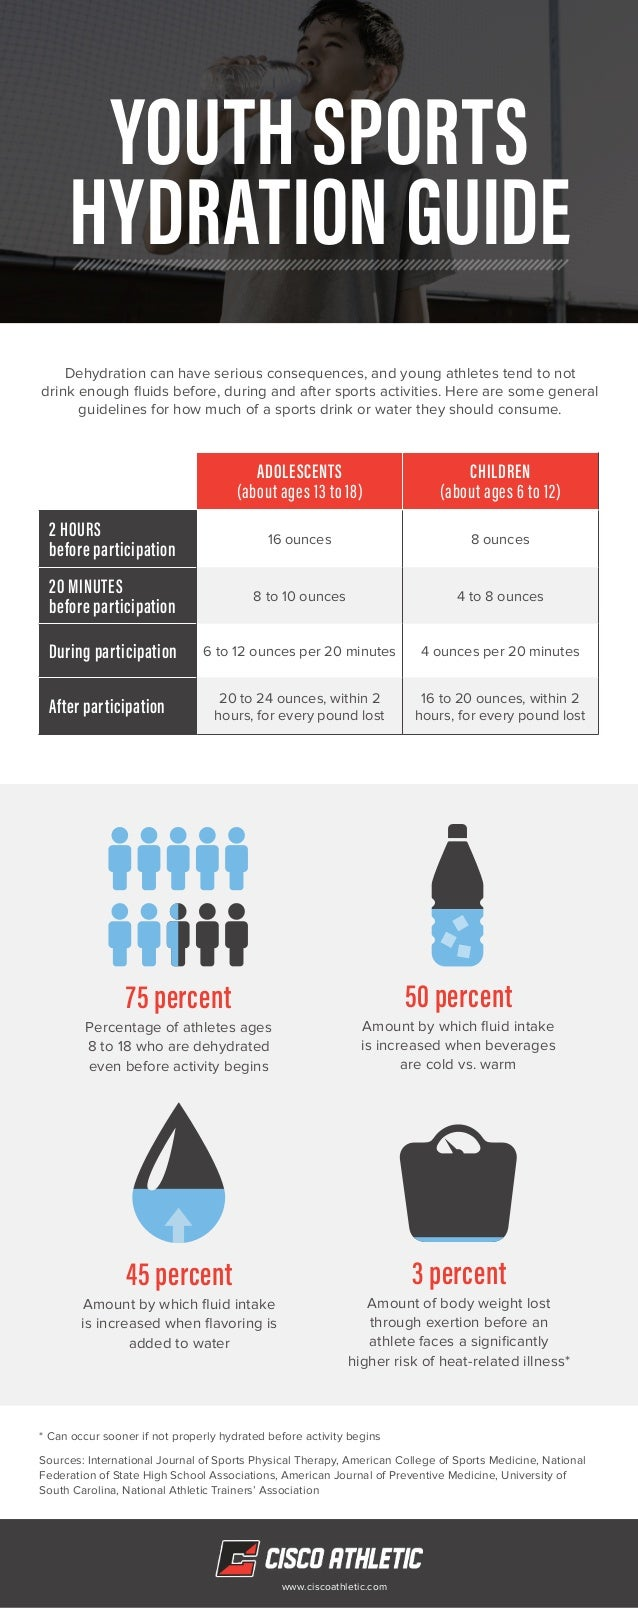 YOUTH SPORTS HYDRATION GUIDE ADOLESCENTS (about ages 13 to 18) CHILDREN (about ages 6 to 12) 2 HOURS before participation ...